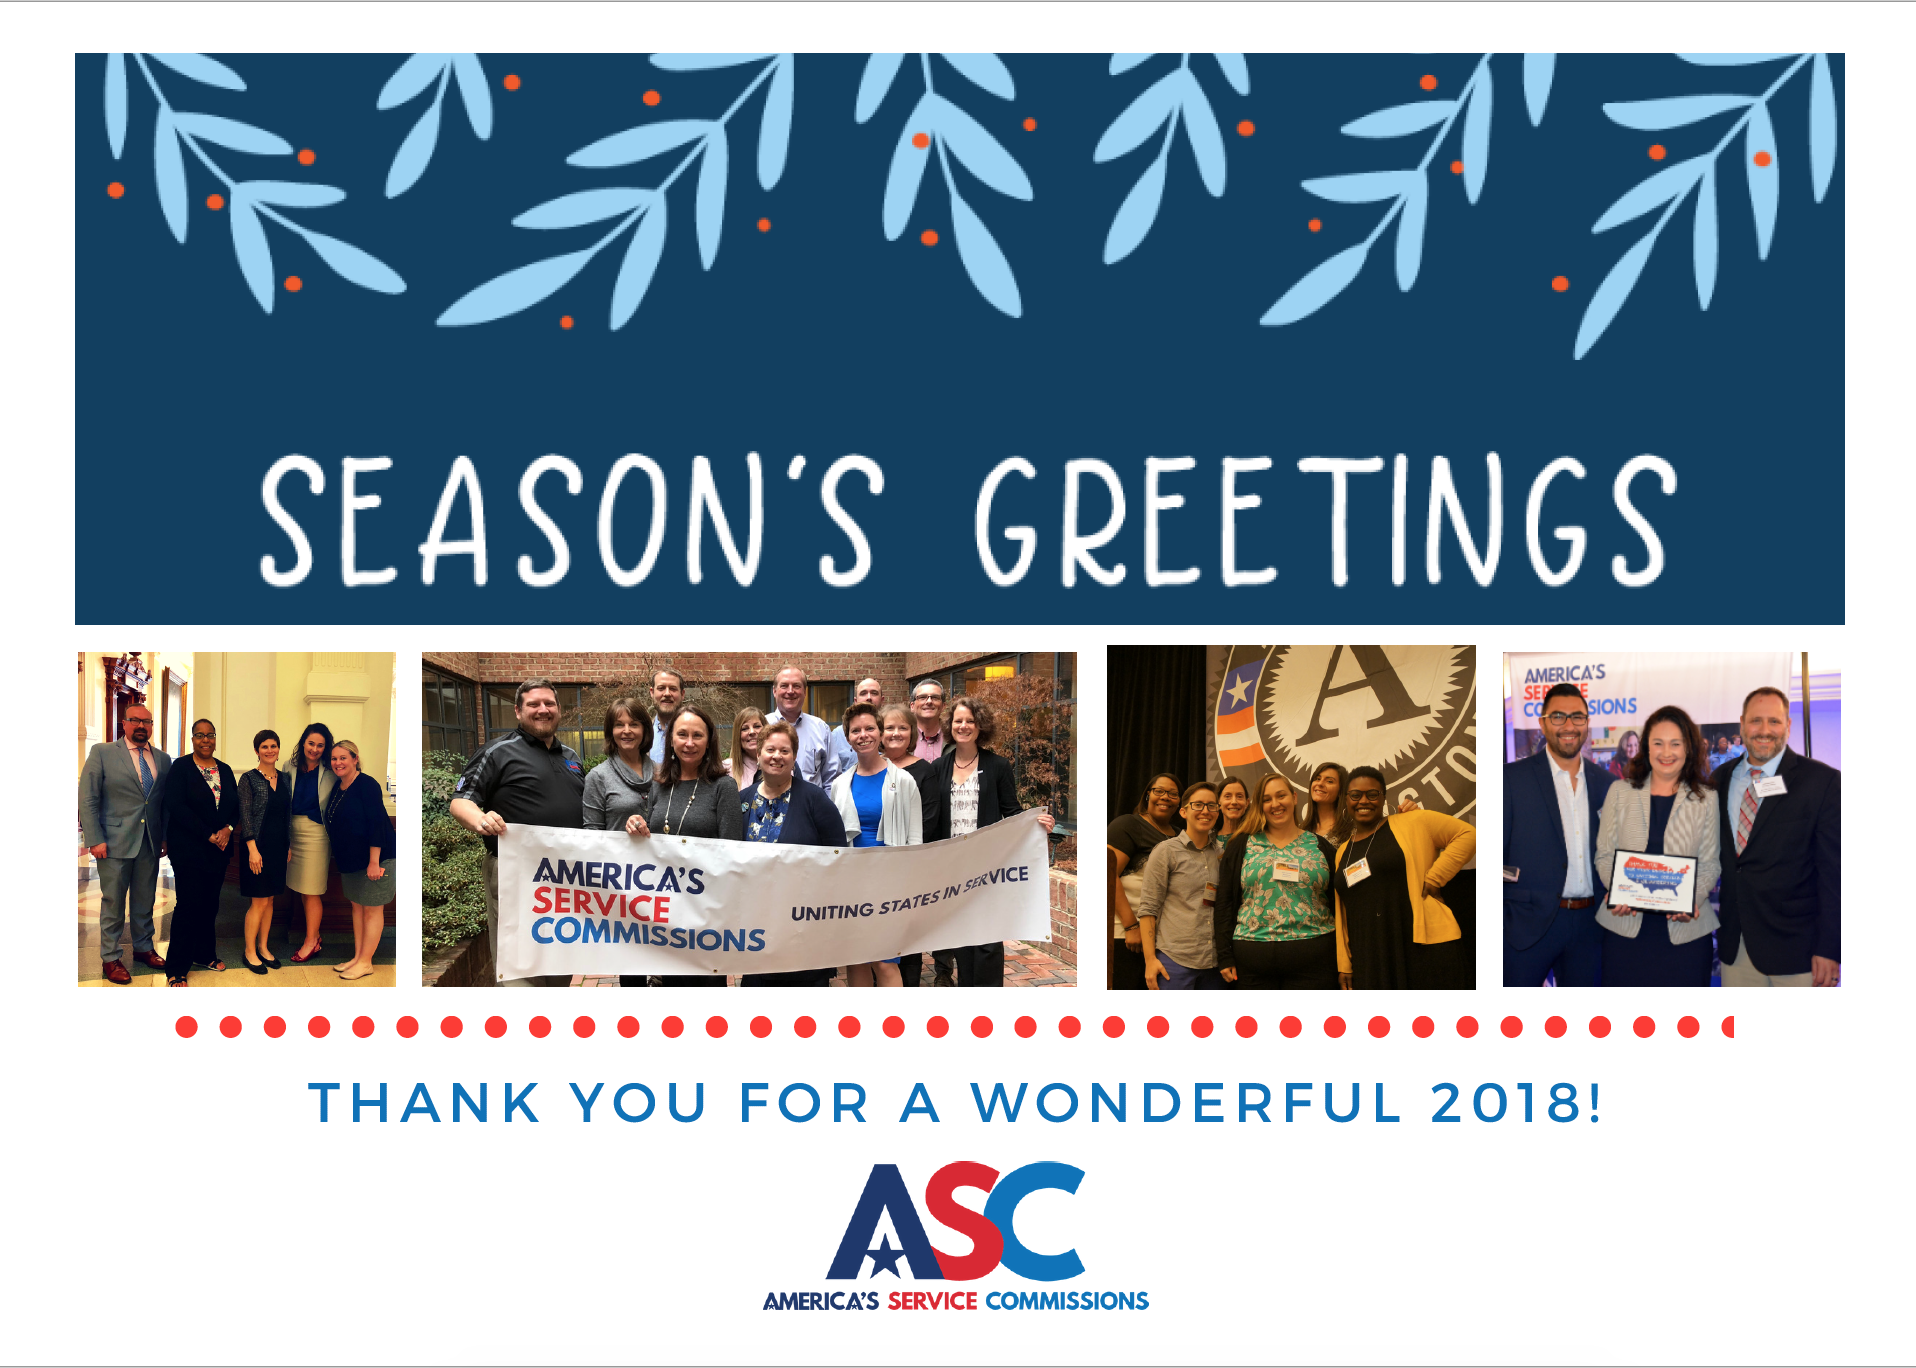 3a1a2389b13 Wishing all of you a wonderful holiday break and a happy new year on behalf  of America's 52 state service commissions.